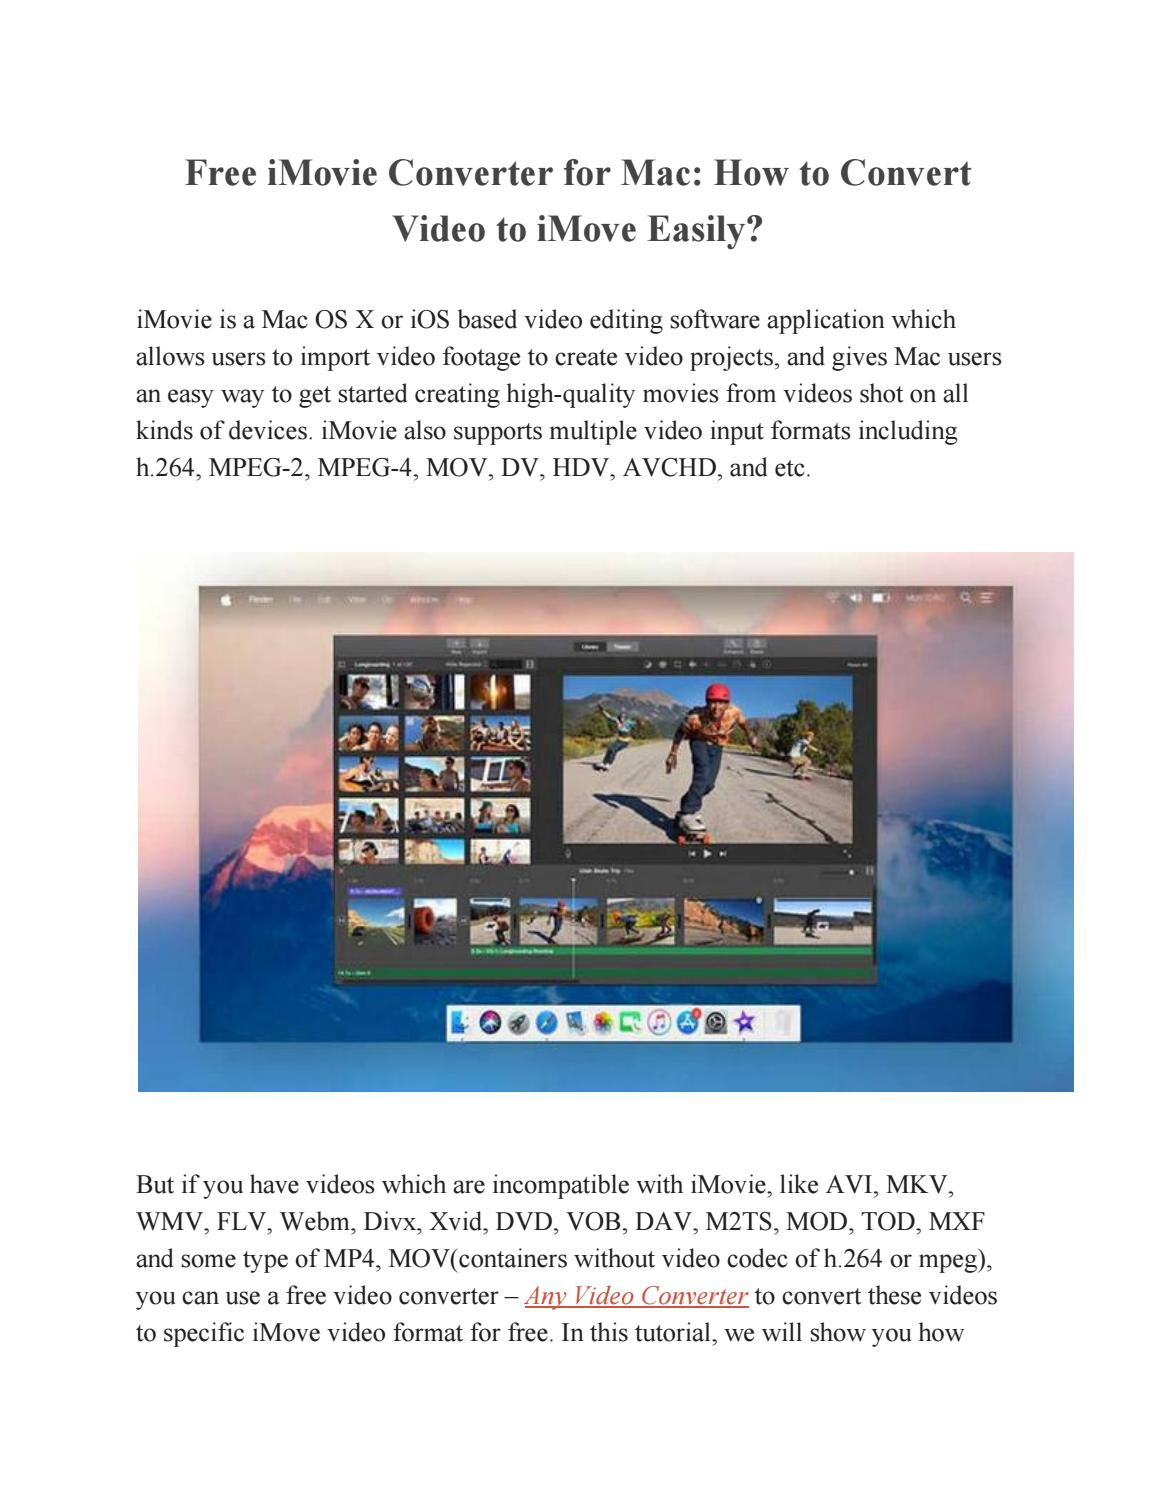 How to Convert Video to iMove Easily? by Paris Young - issuu